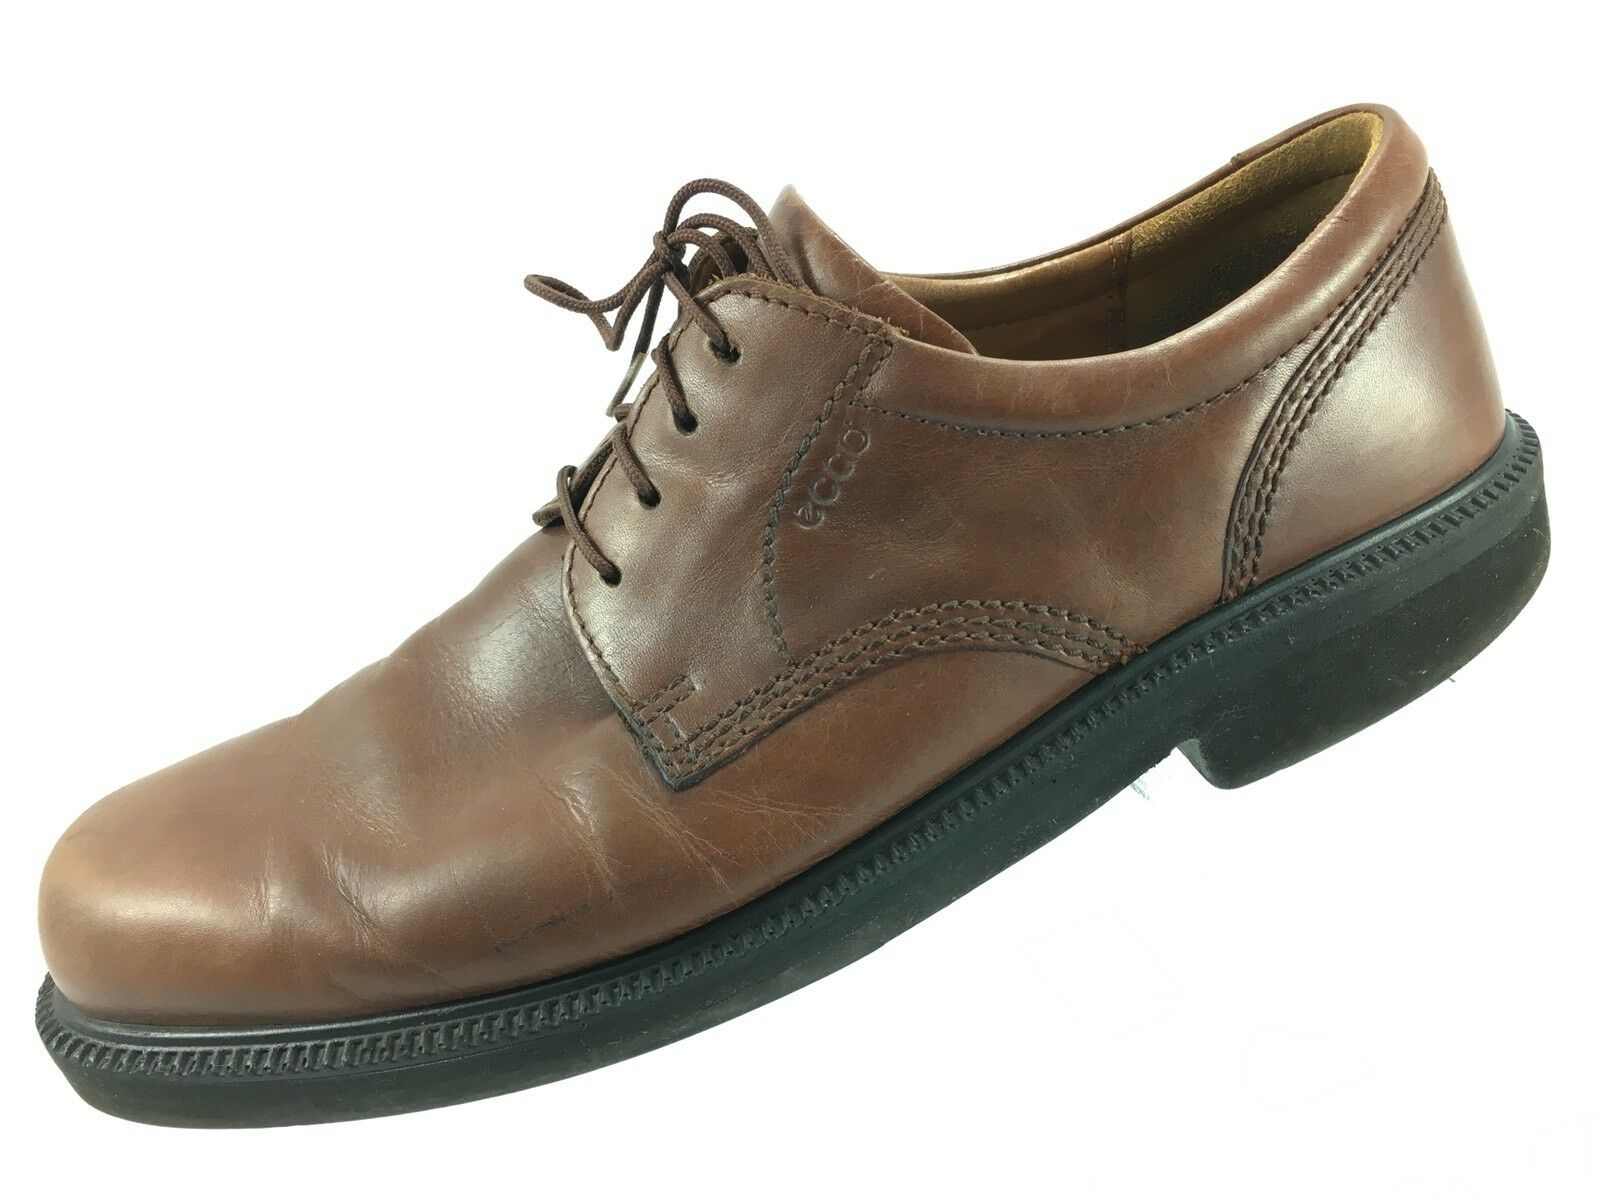 SH11 Ecco EUR 43 US 9-9.5 Brown Leather Plain Toe Derby Oxford Casual Shoes